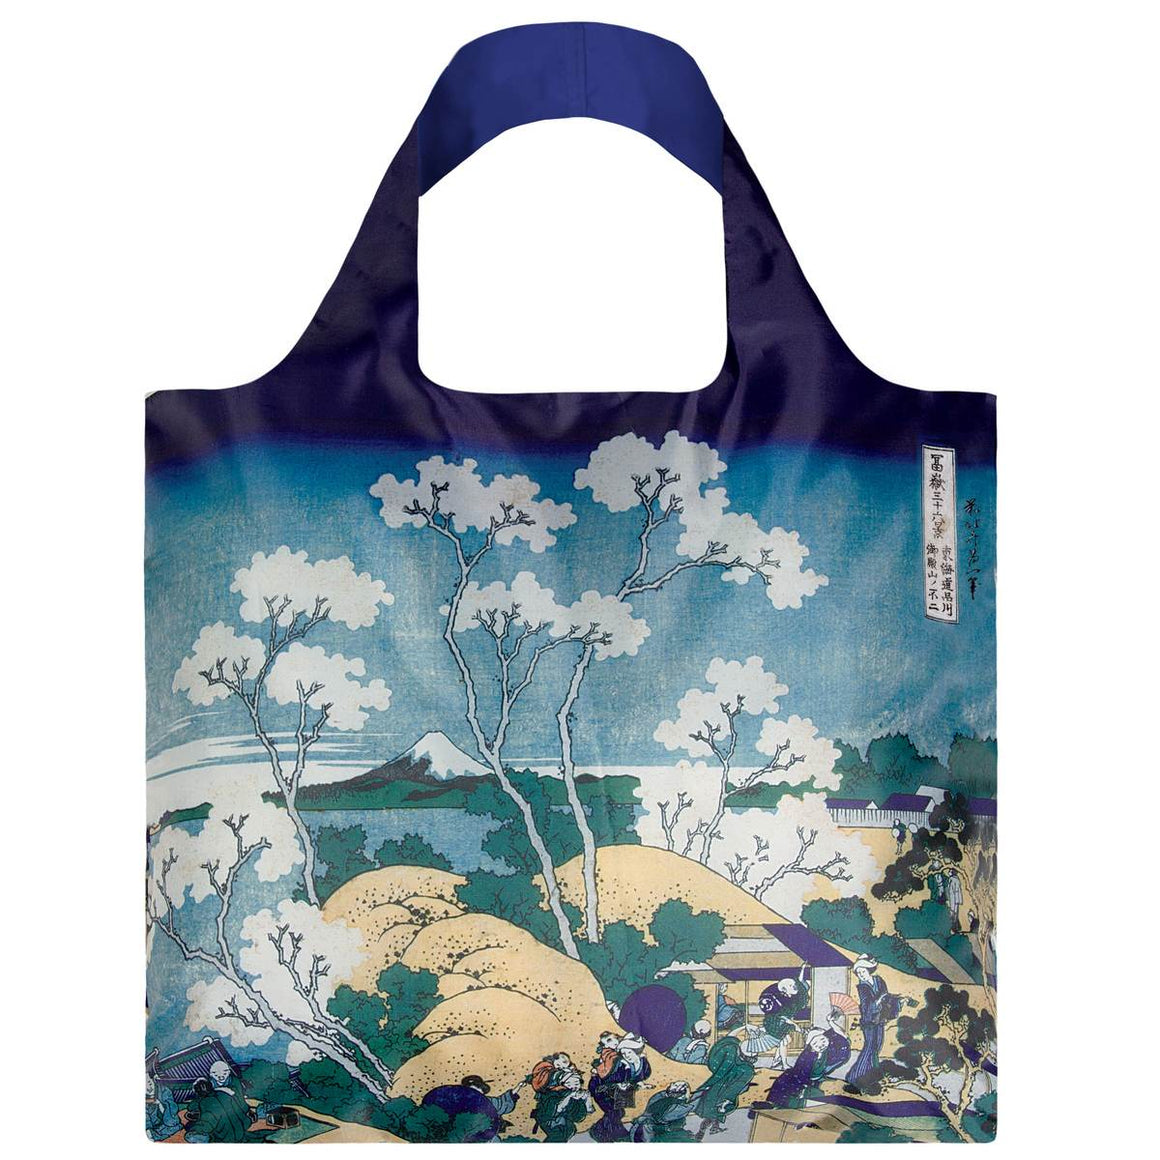 A Blue toned shopping bag with a Japanese print of a tree and a view of Mt. Fuji by Hokusai